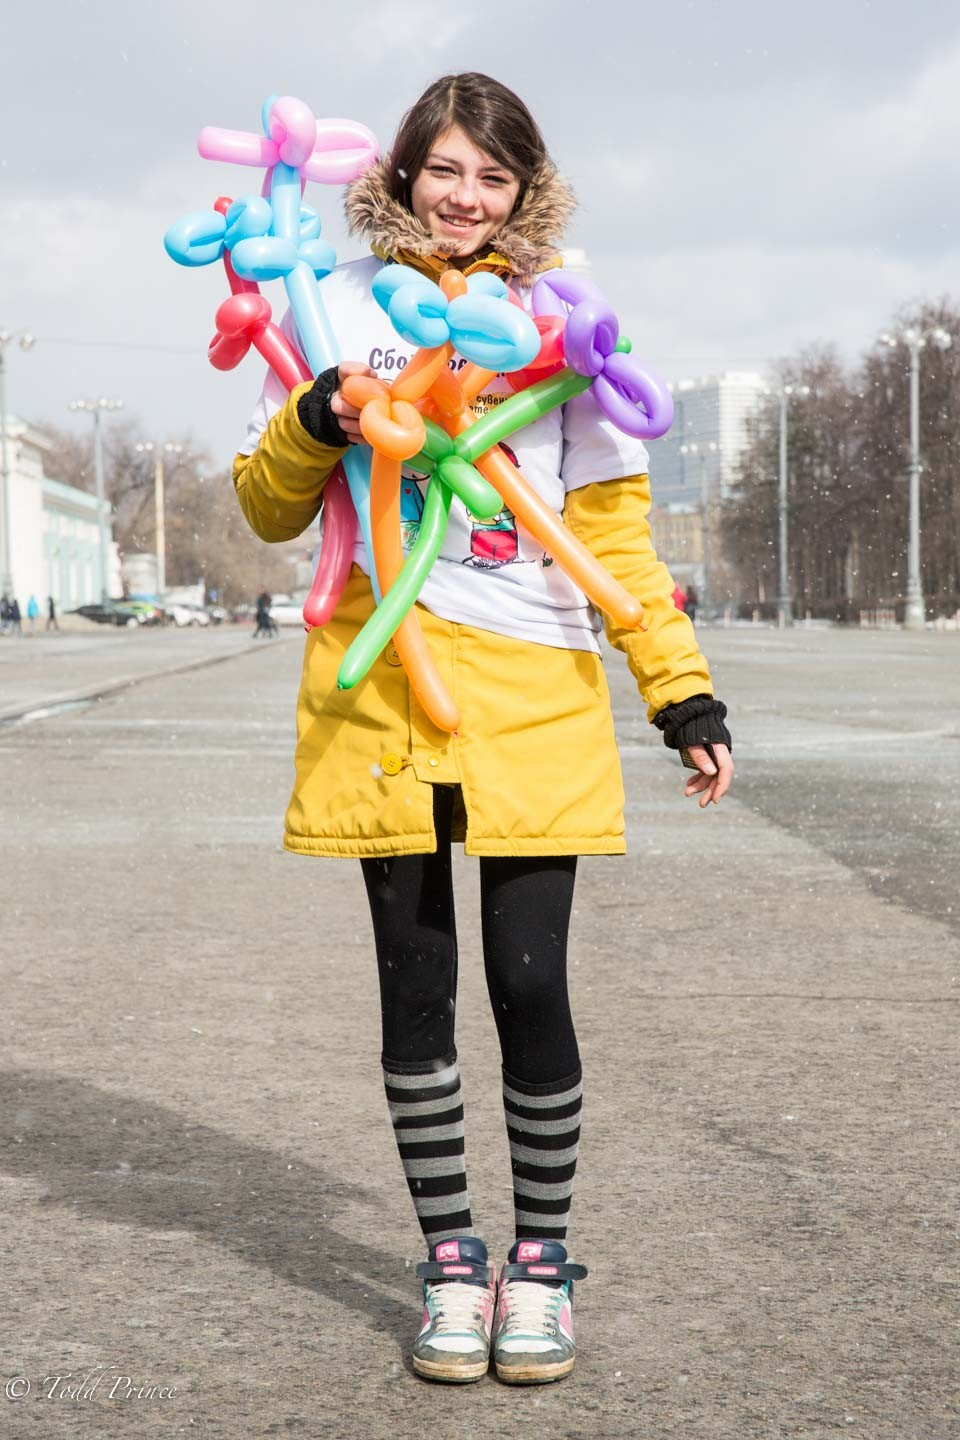 Moscow Balloon Seller